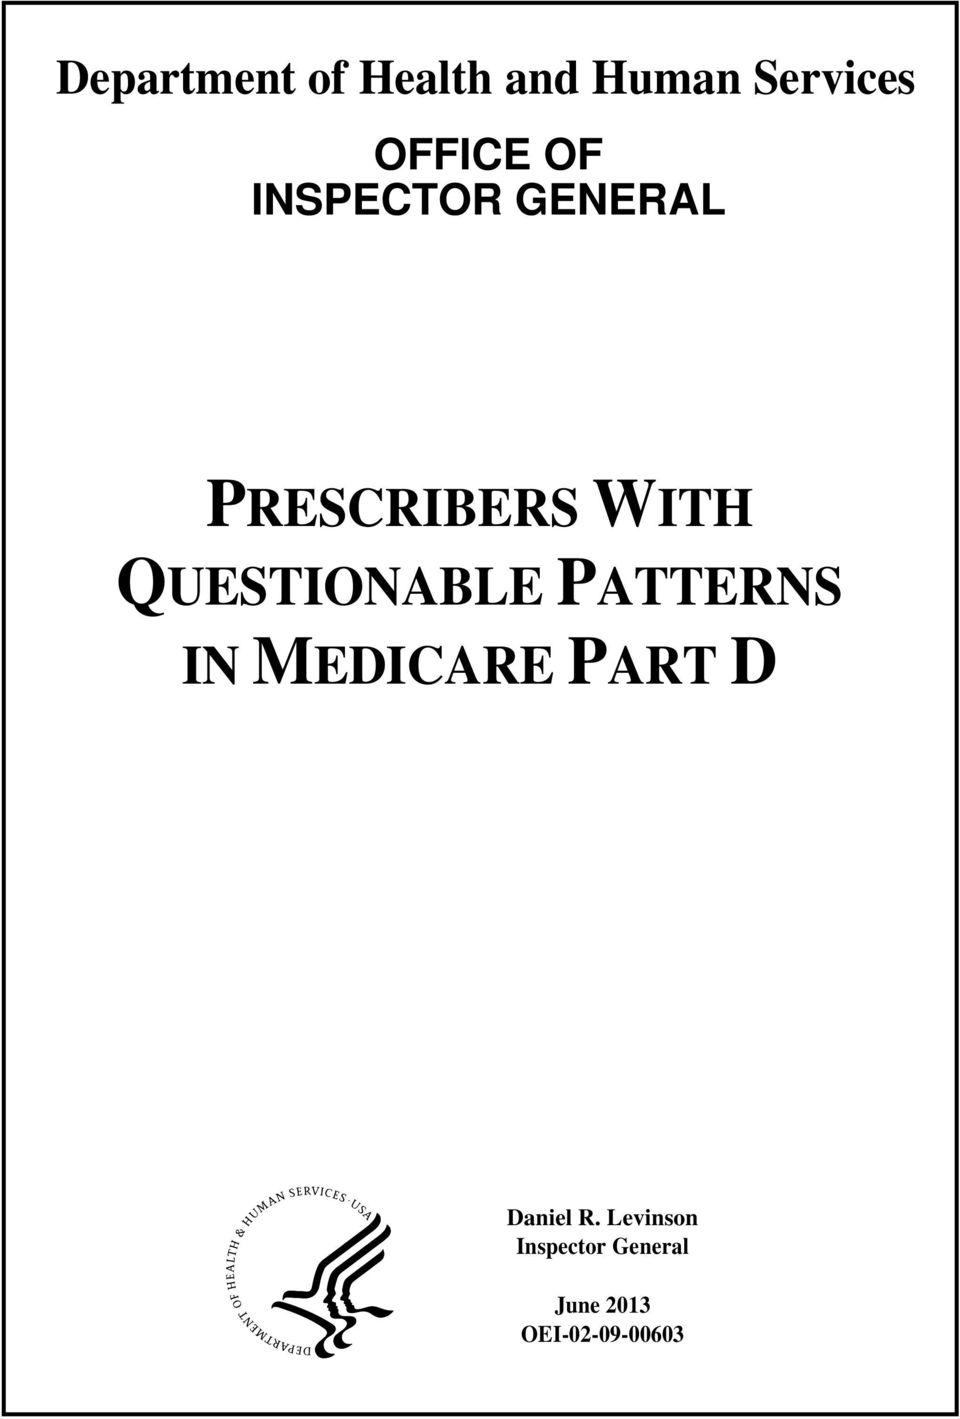 QUESTIONABLE PATTERNS IN MEDICARE PART D